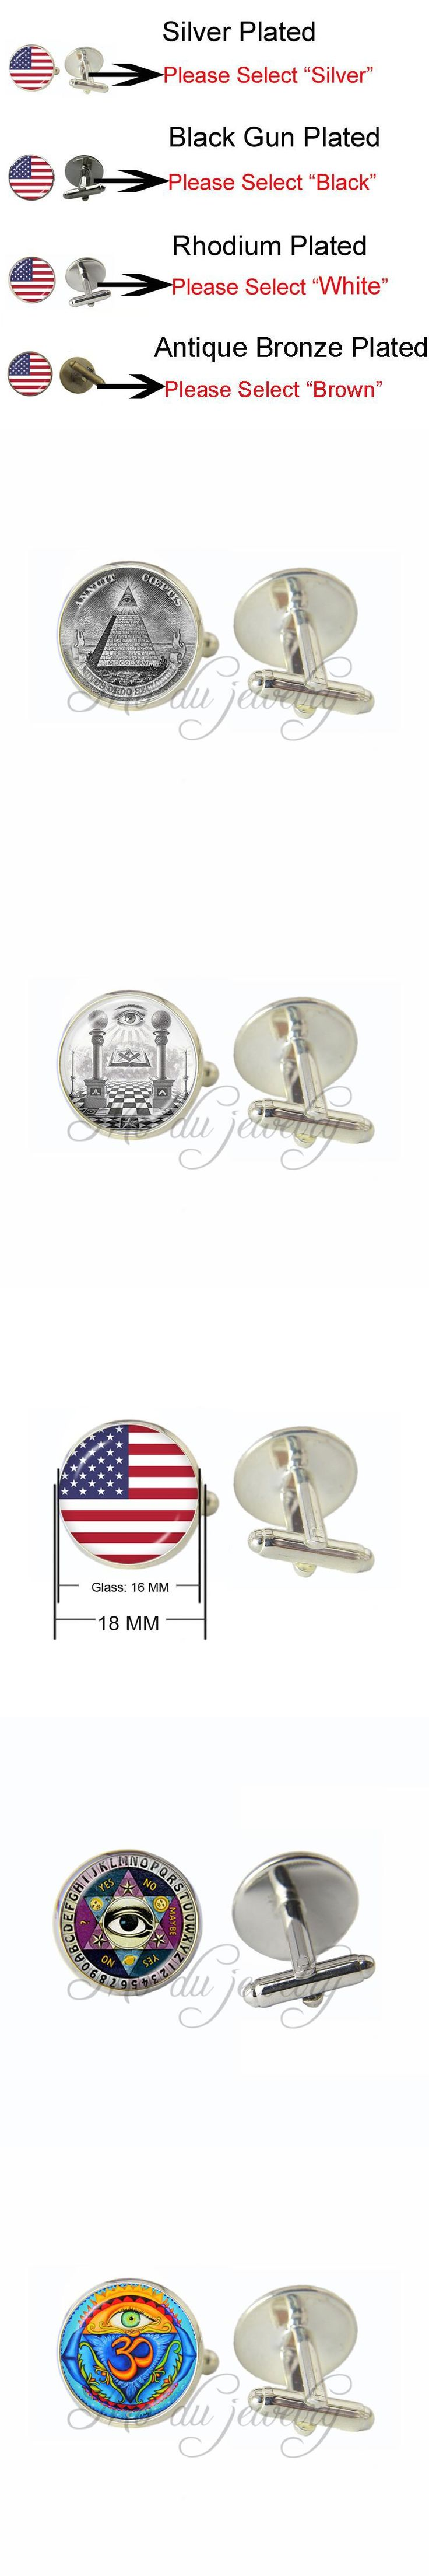 Drop Shipping Theory Photo Glass Cuff Button Freemason Sign Illuminati Secret Masonic Cufflinks Conspiracy Eye of Providence Men